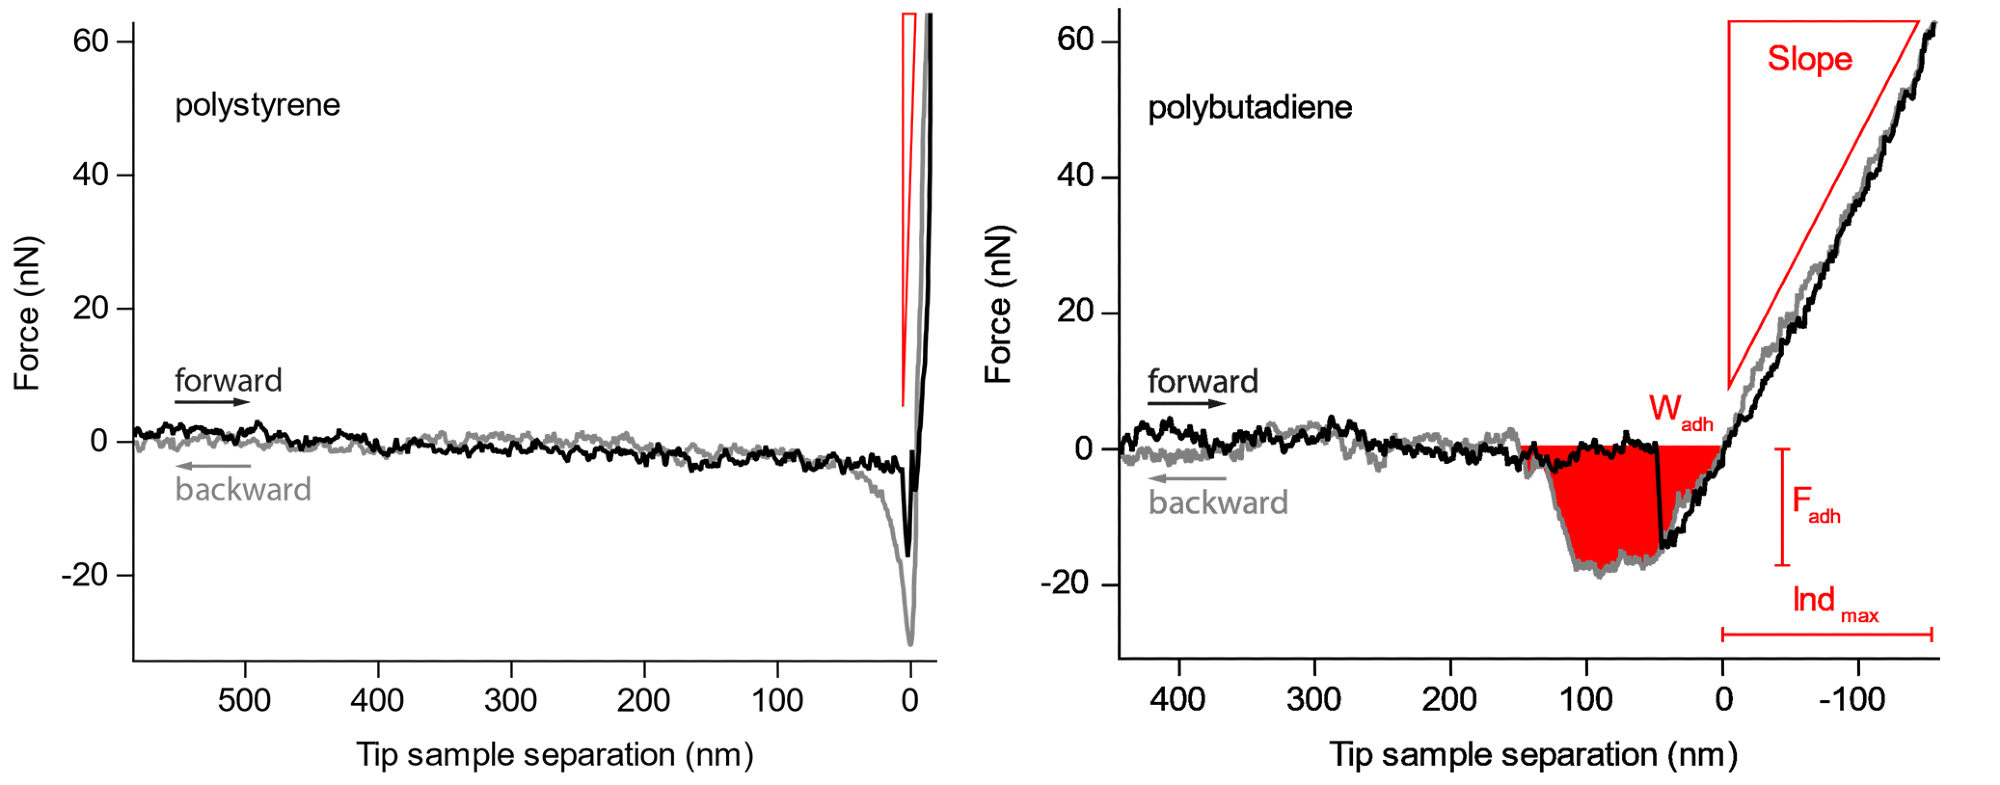 Force curves on the harder polystyrene and the softer polybutadiene. The slope, maximum adhesion force and work needed to retract the cantilever from the sample are readily observed.